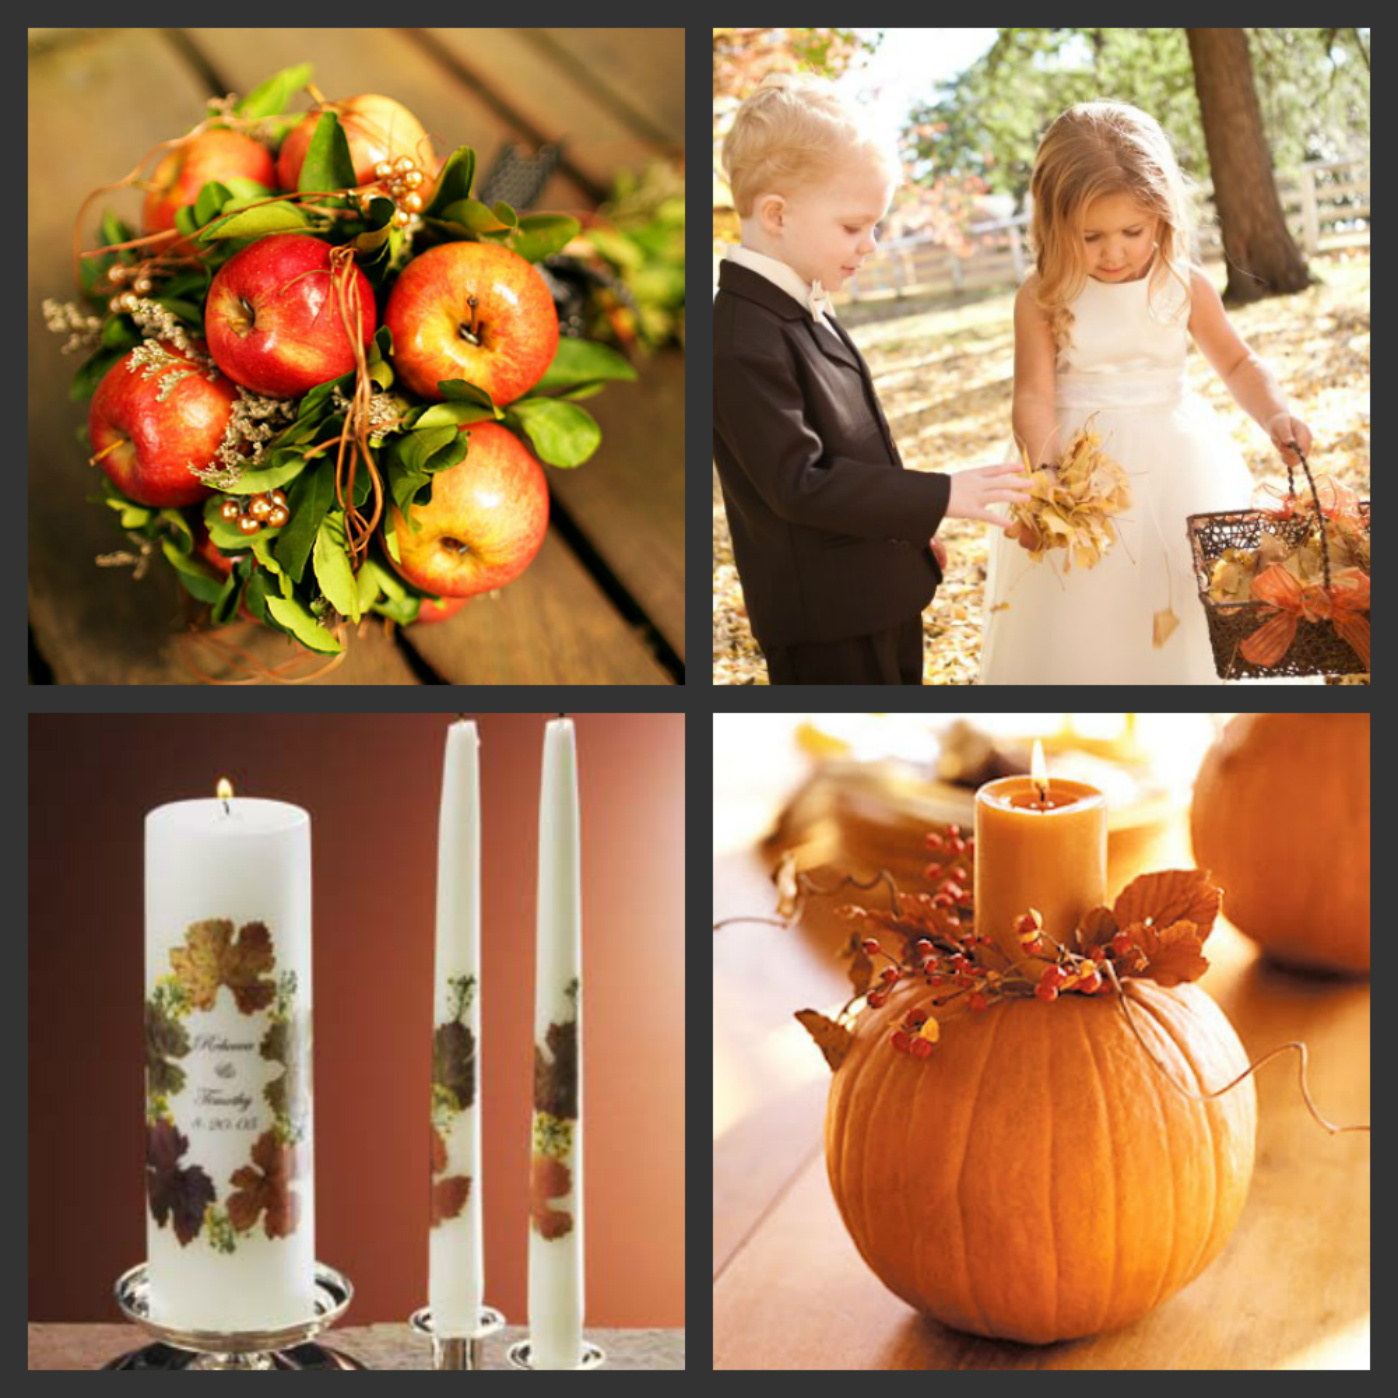 Inexpensive Wedding Ideas For Fall: Weddings Are Fun Blog: Autumn Harvest Themed Wedding